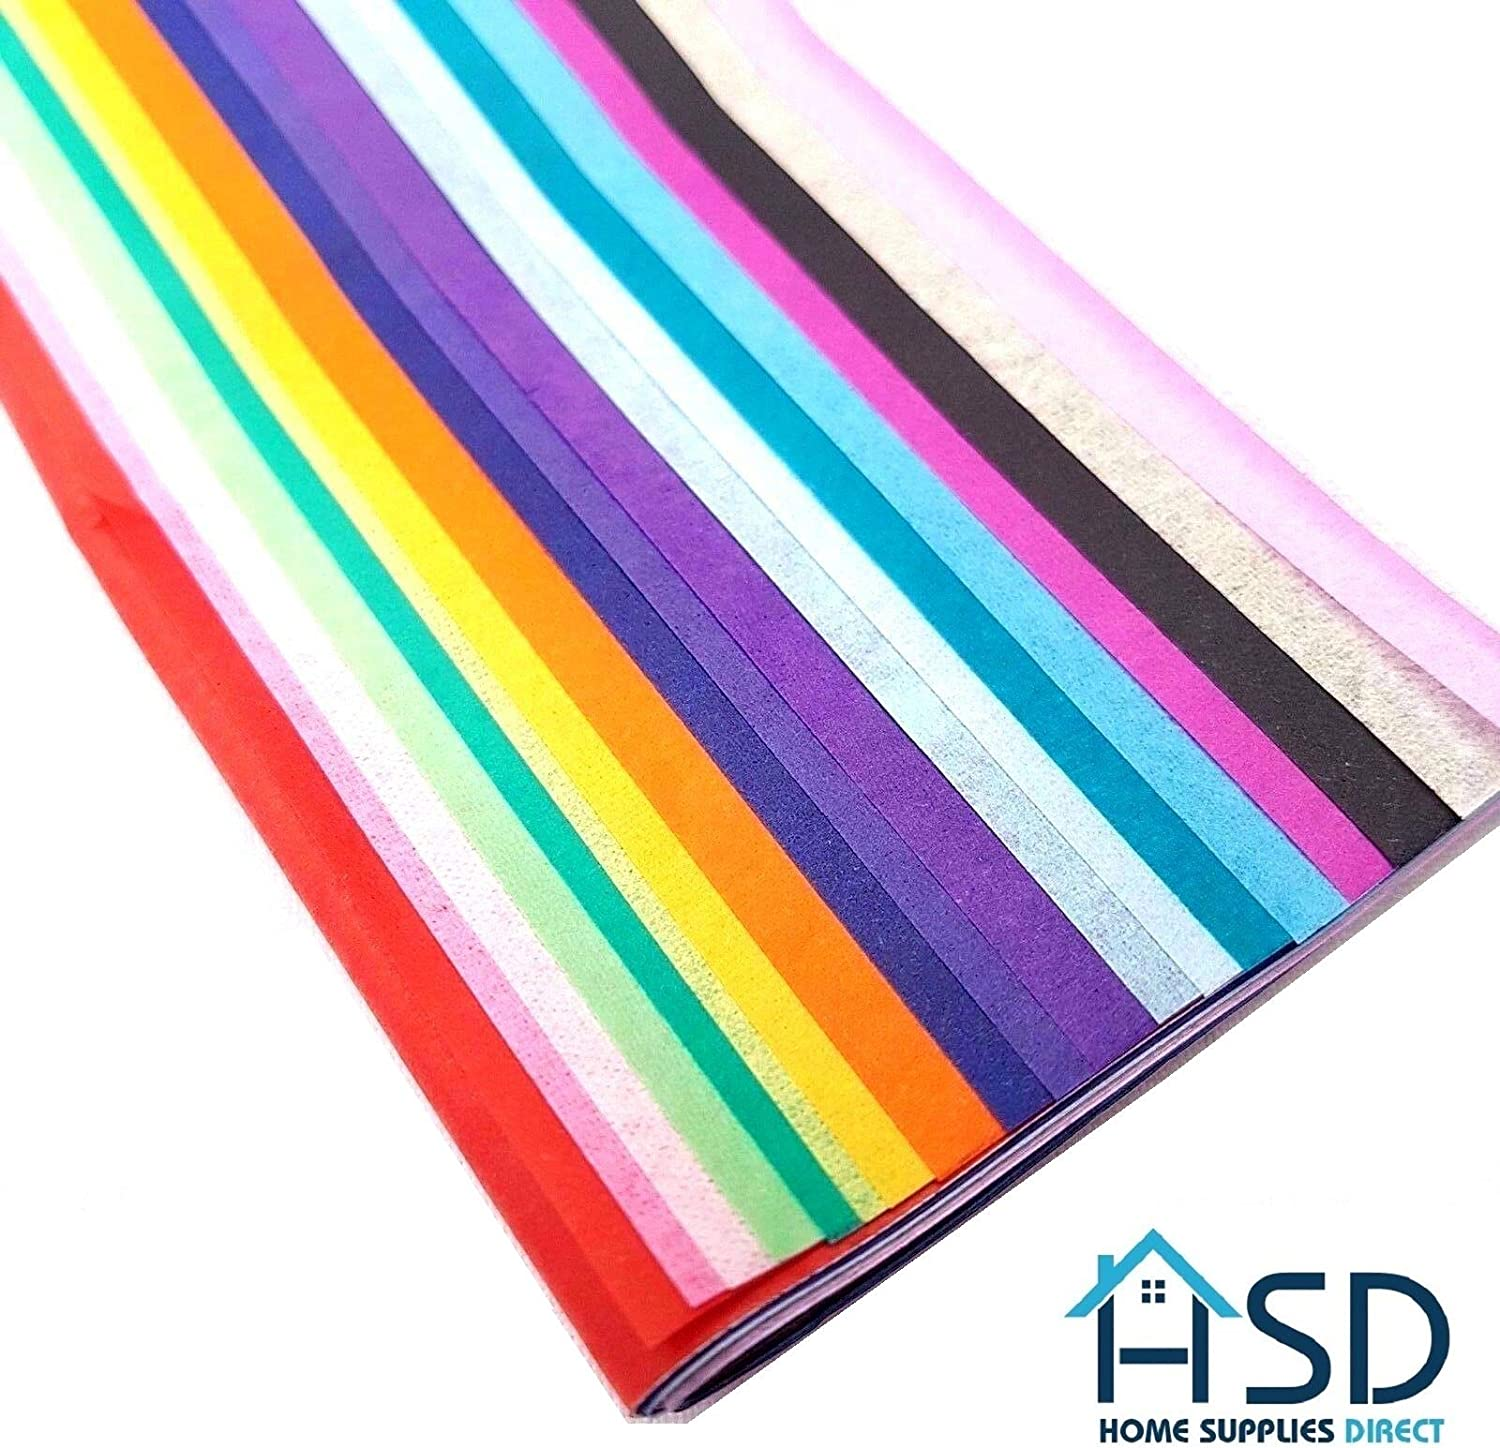 50cm x 66cm Solid Colour Crepe Paper Sheets Assorted Colours Kids Art and Craft Tissue Paper Lizzy/® 20pk Coloured Tissue Paper Perfect for Gift Wrapping